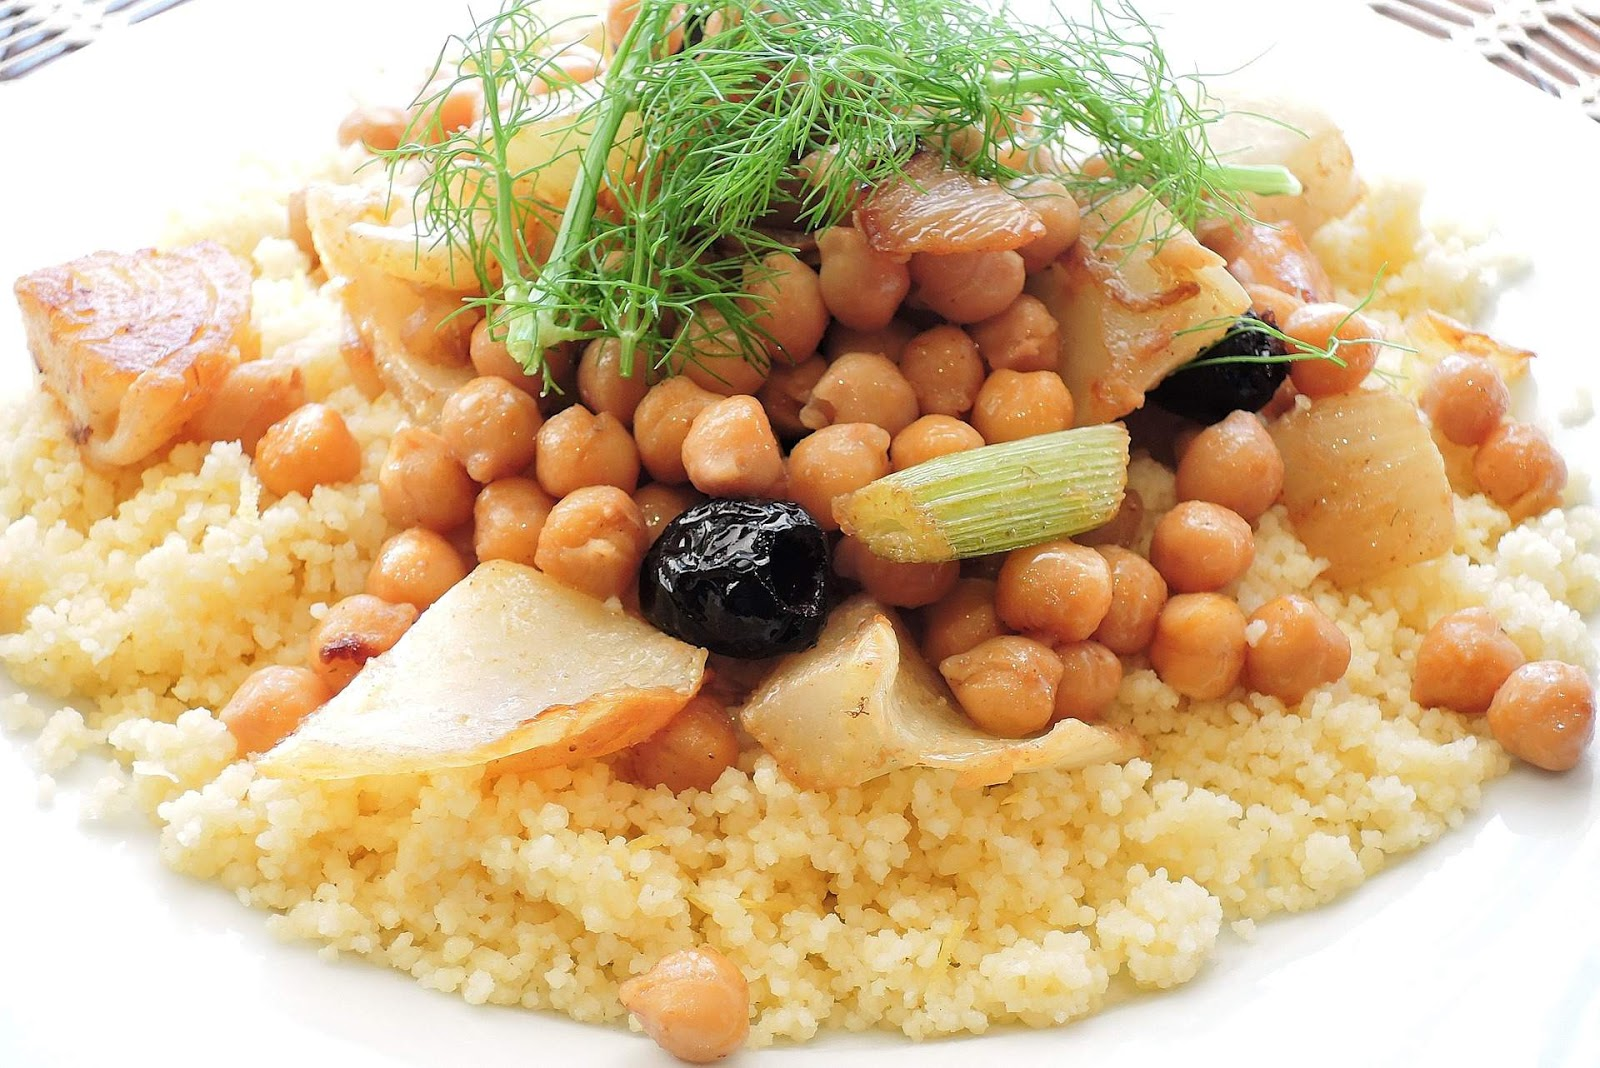 Easy recipe to make couscous cook it easy donal skehan good mood food ingredients serves 4 225g couscous 100g feta cheese crumbled 425ml pint vegetable stock 1 red onion finely chopped forumfinder Image collections